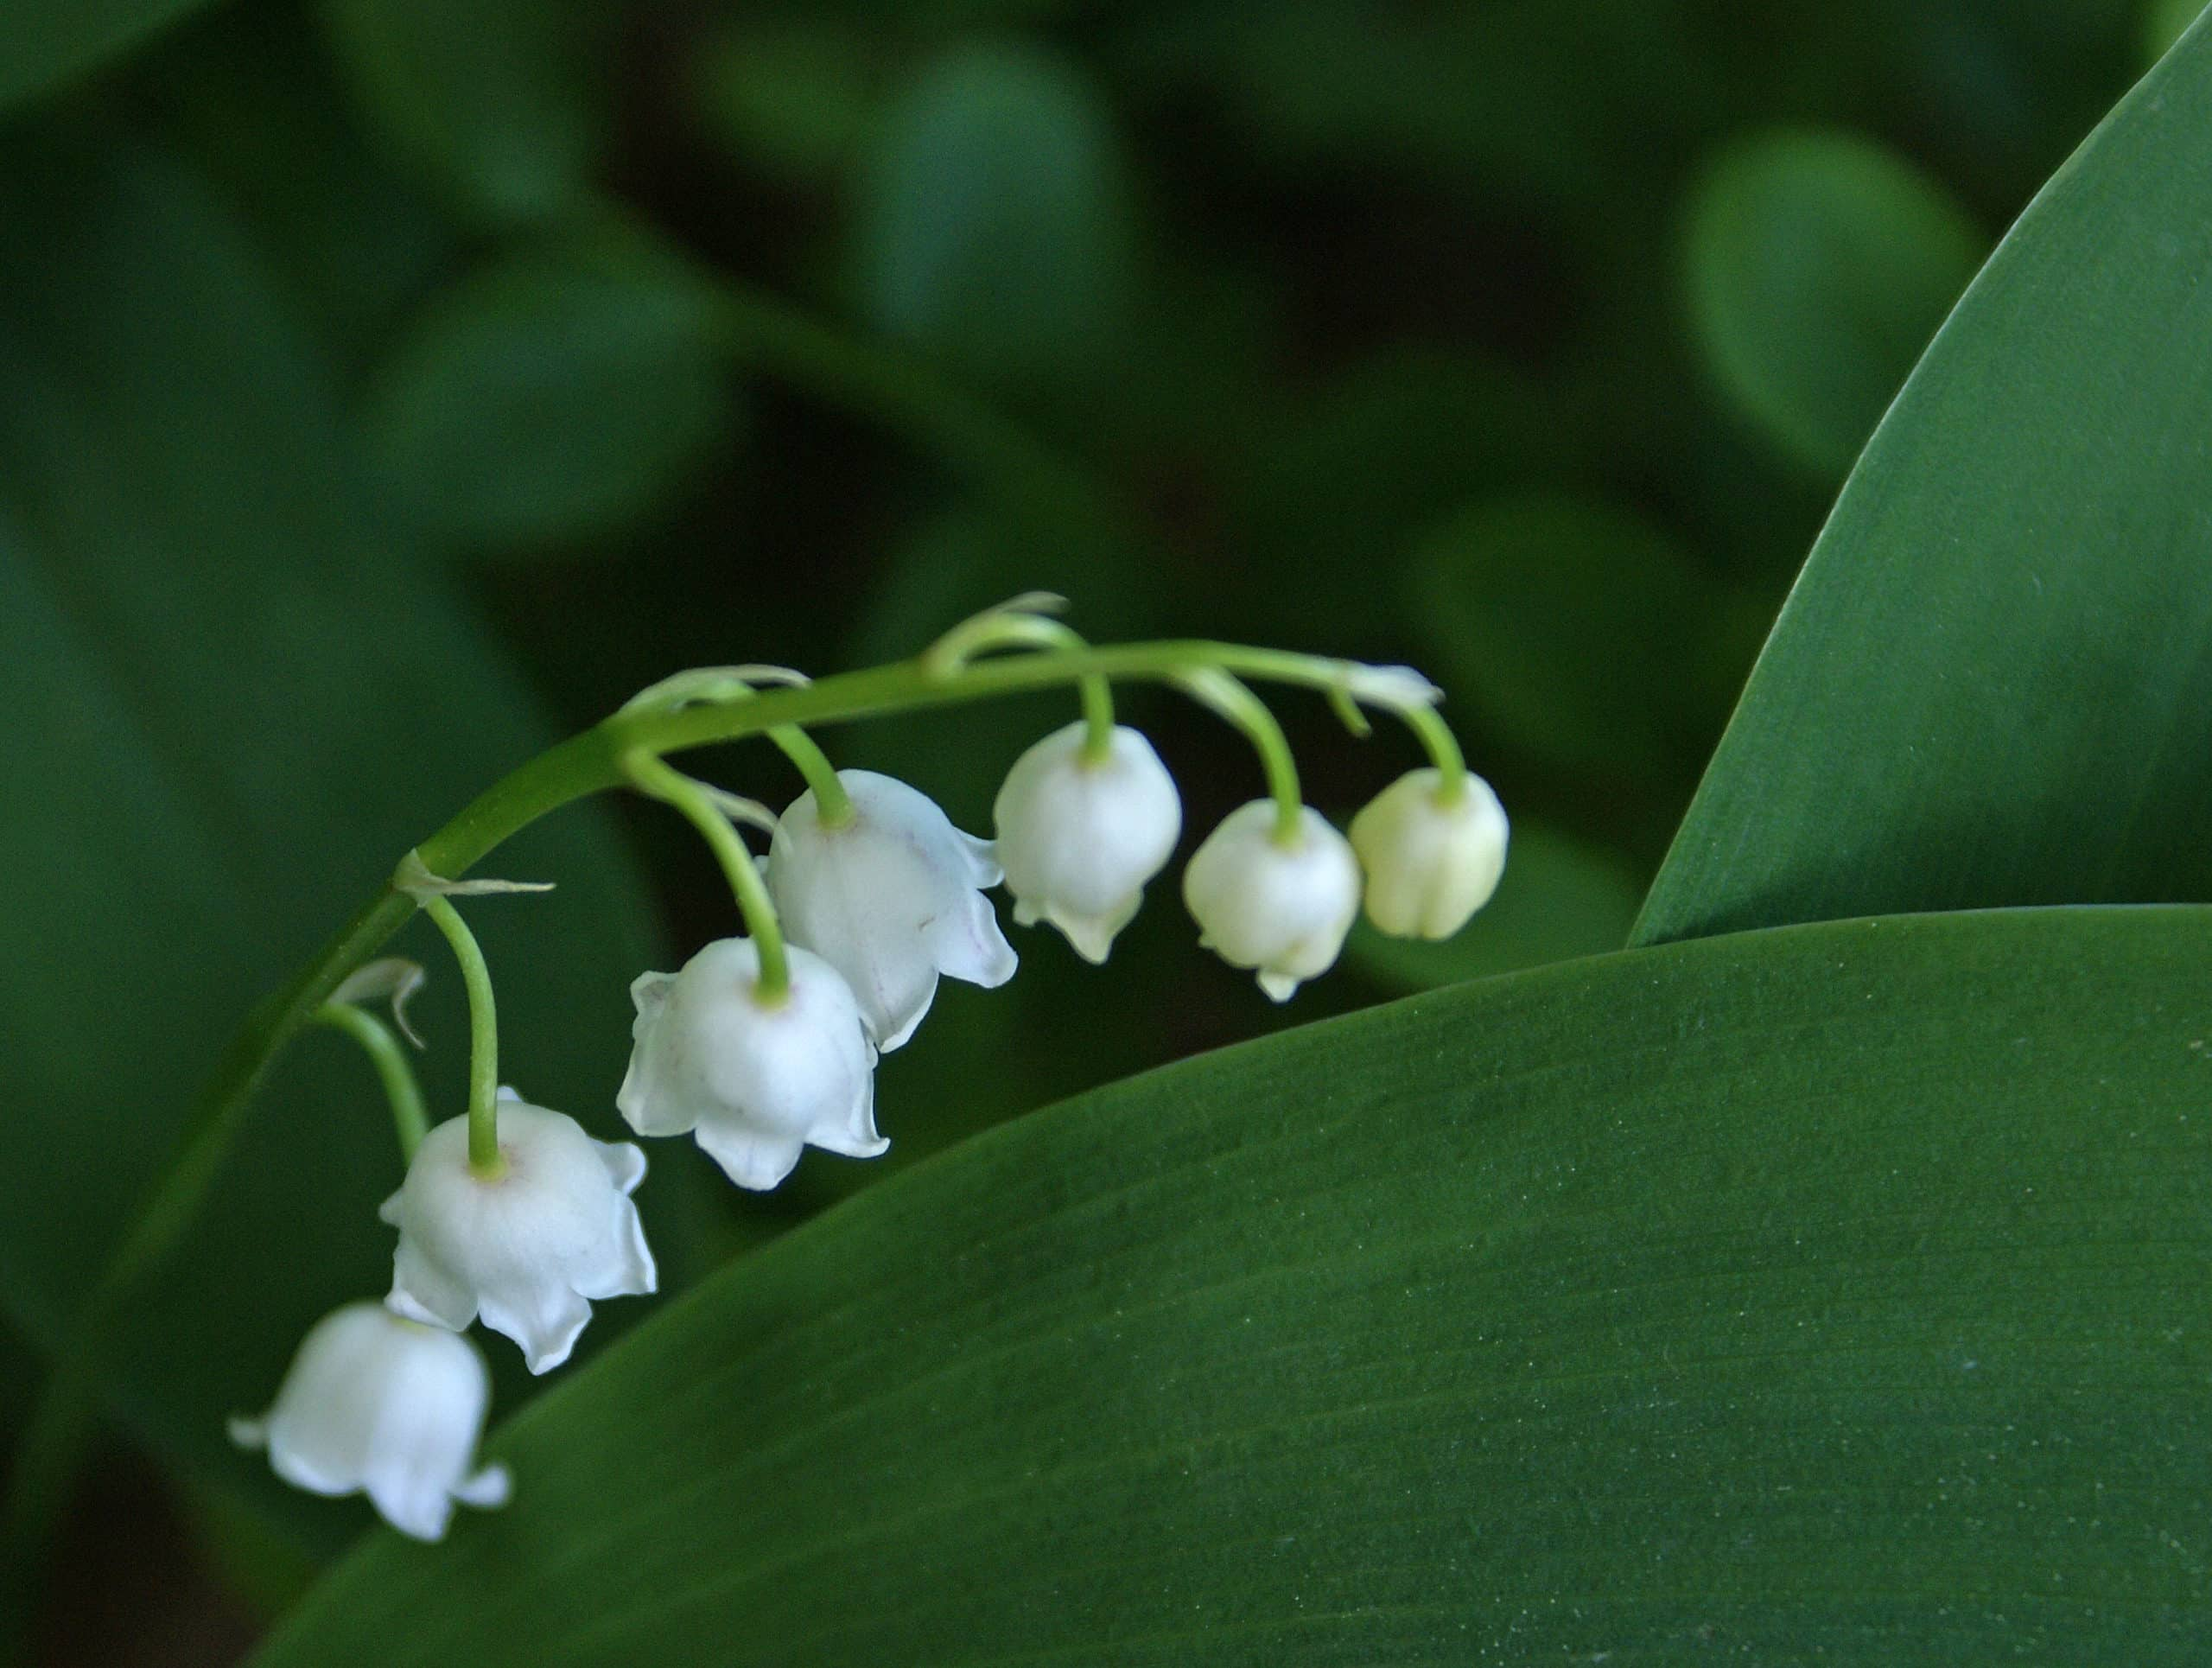 Lily of the Valley. (Convallaria majalis).